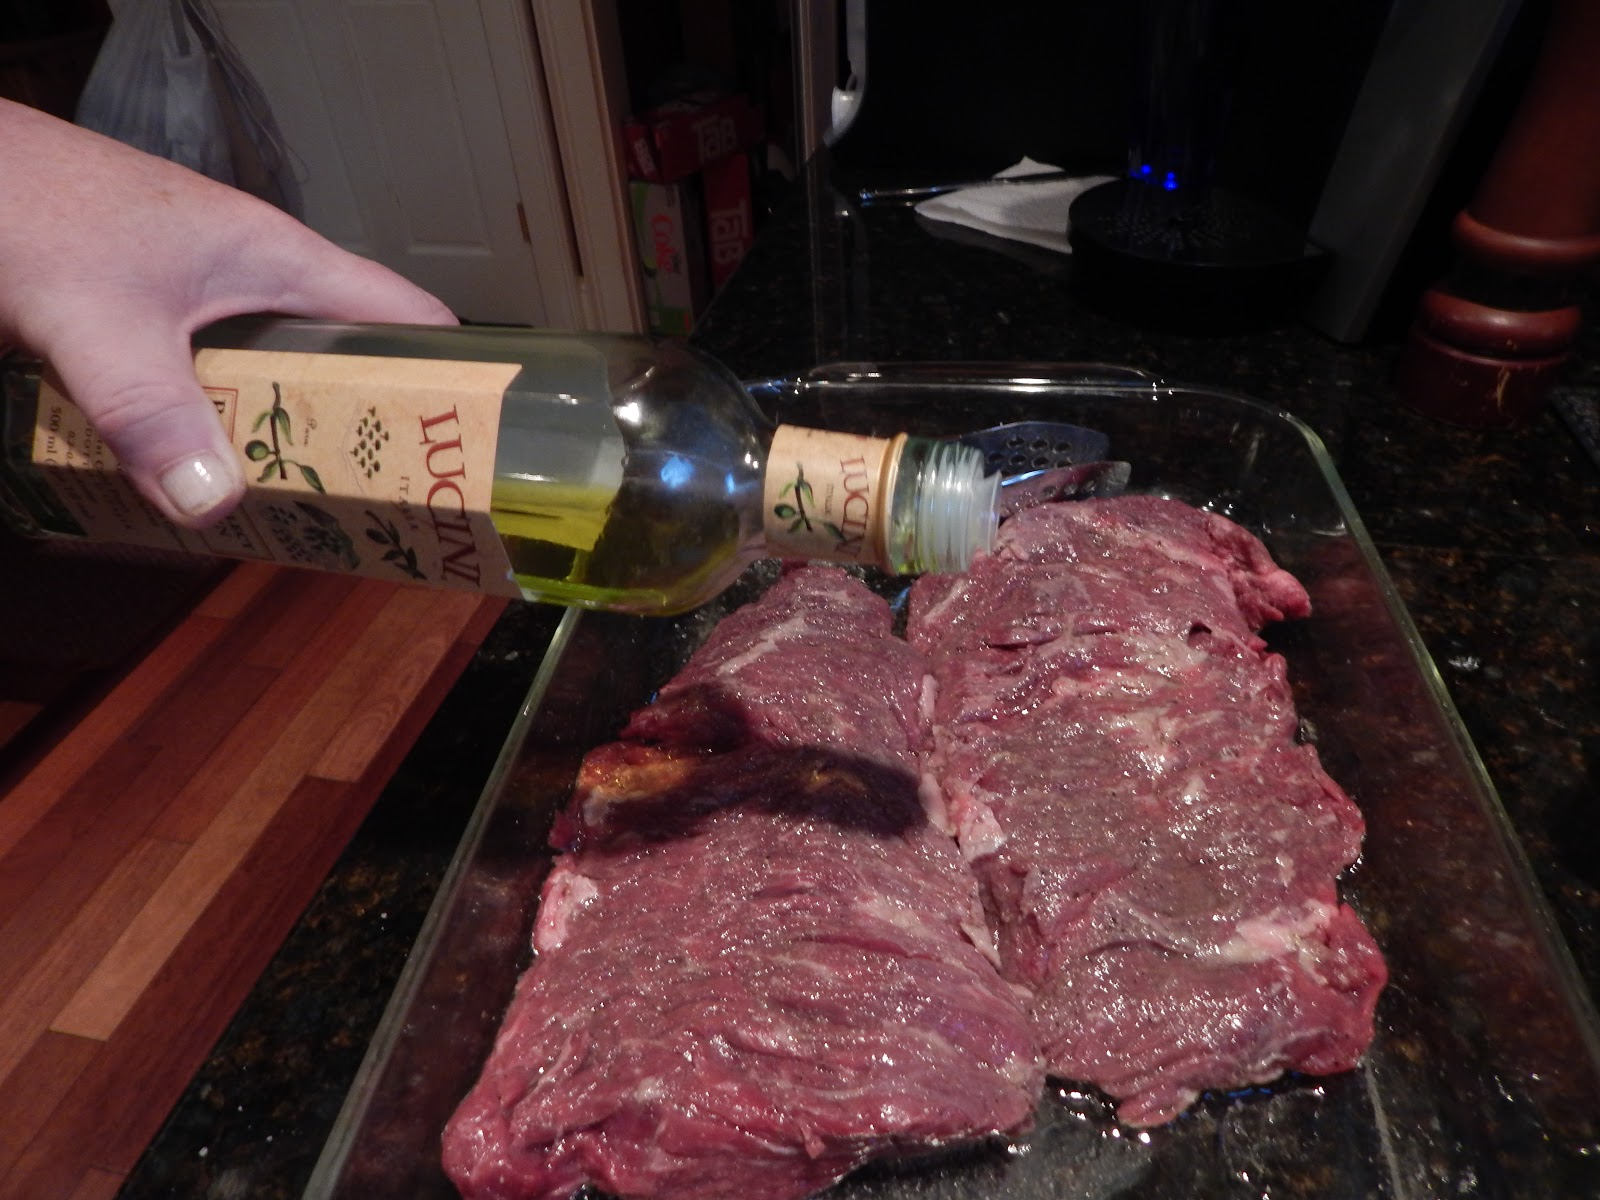 How Long Can A Steak Sit At Room Temperature